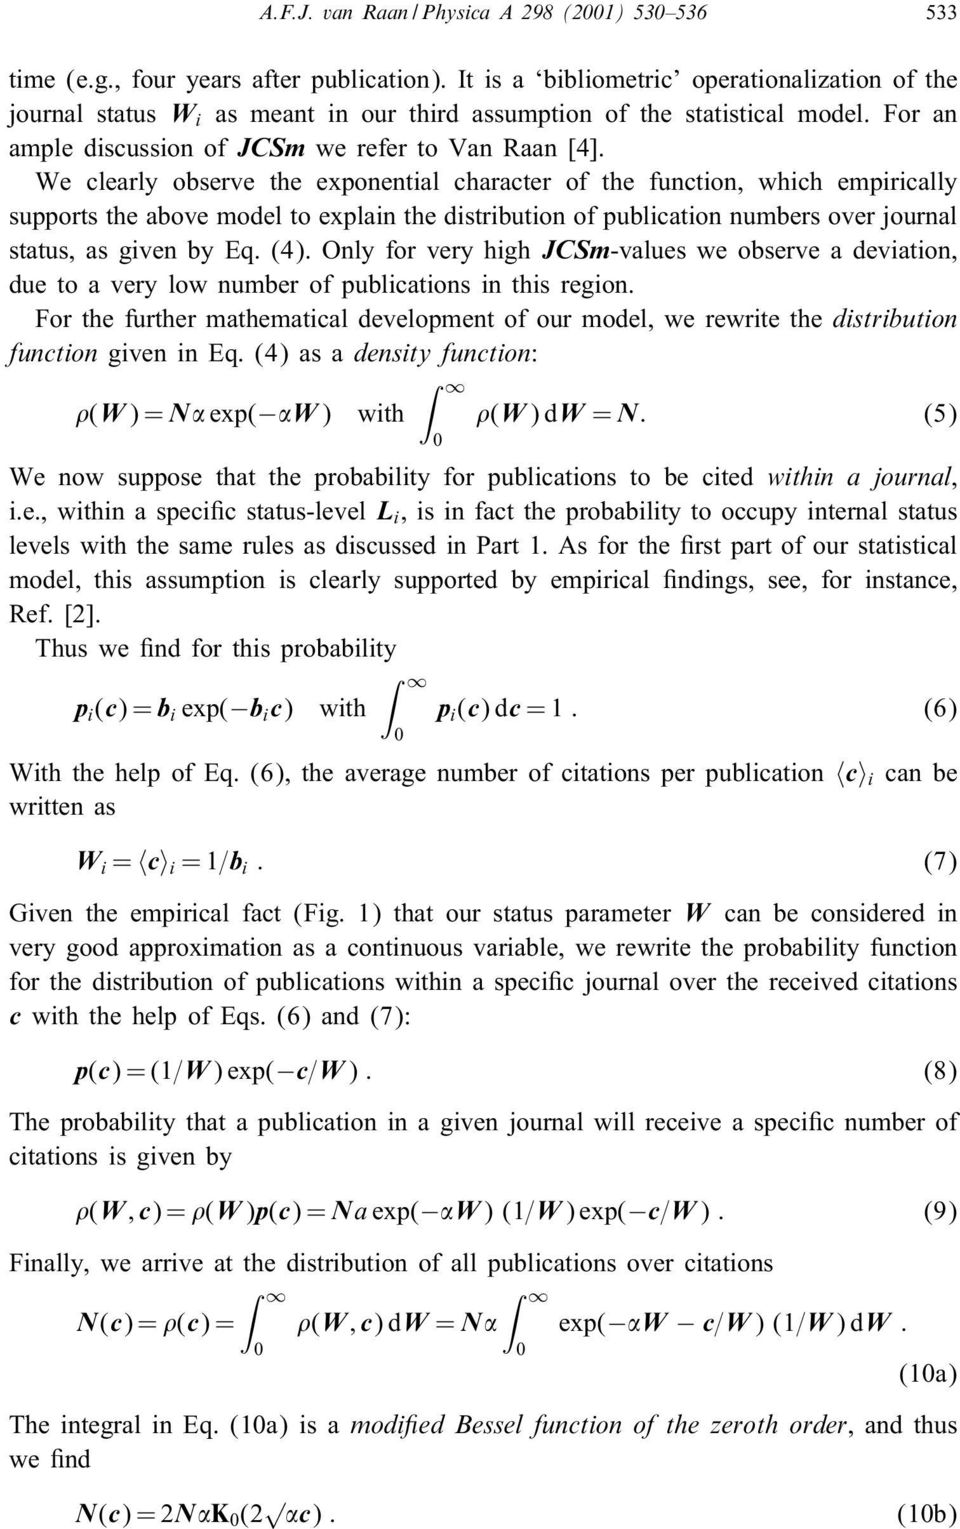 We clearly observe the exponential character of the function, which empirically supports the above model to explain the distribution of publication numbers over journal status, as given by Eq. (4).